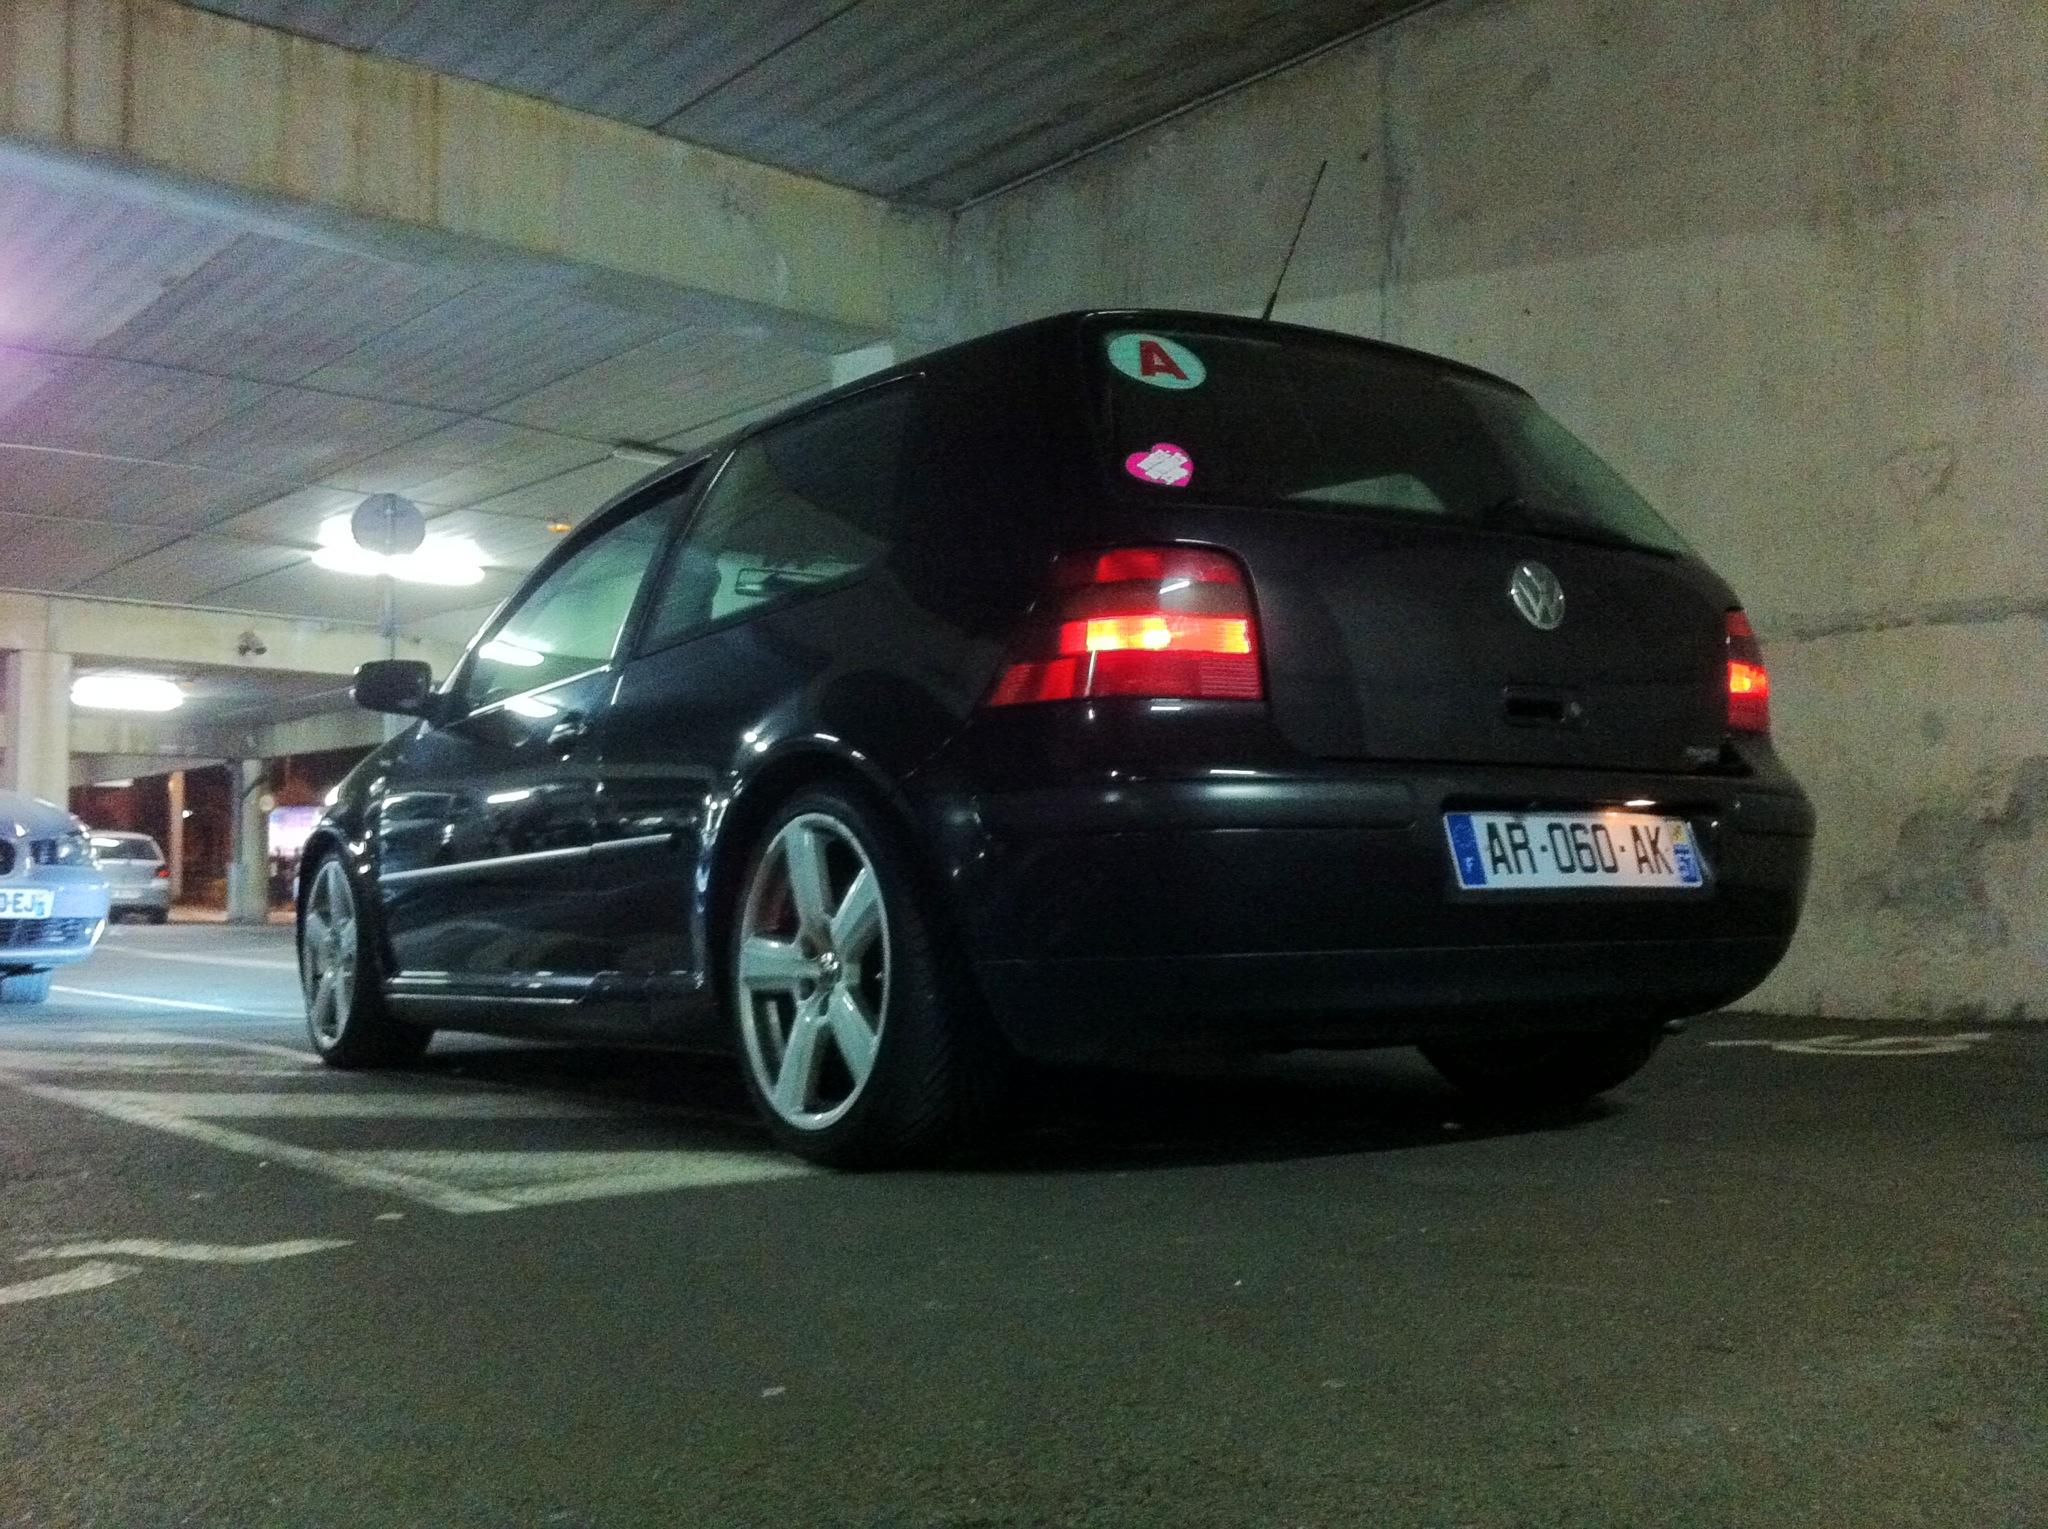 VW Golf IV TDI 90 Basis 1999 Jantes Peintes Bombing